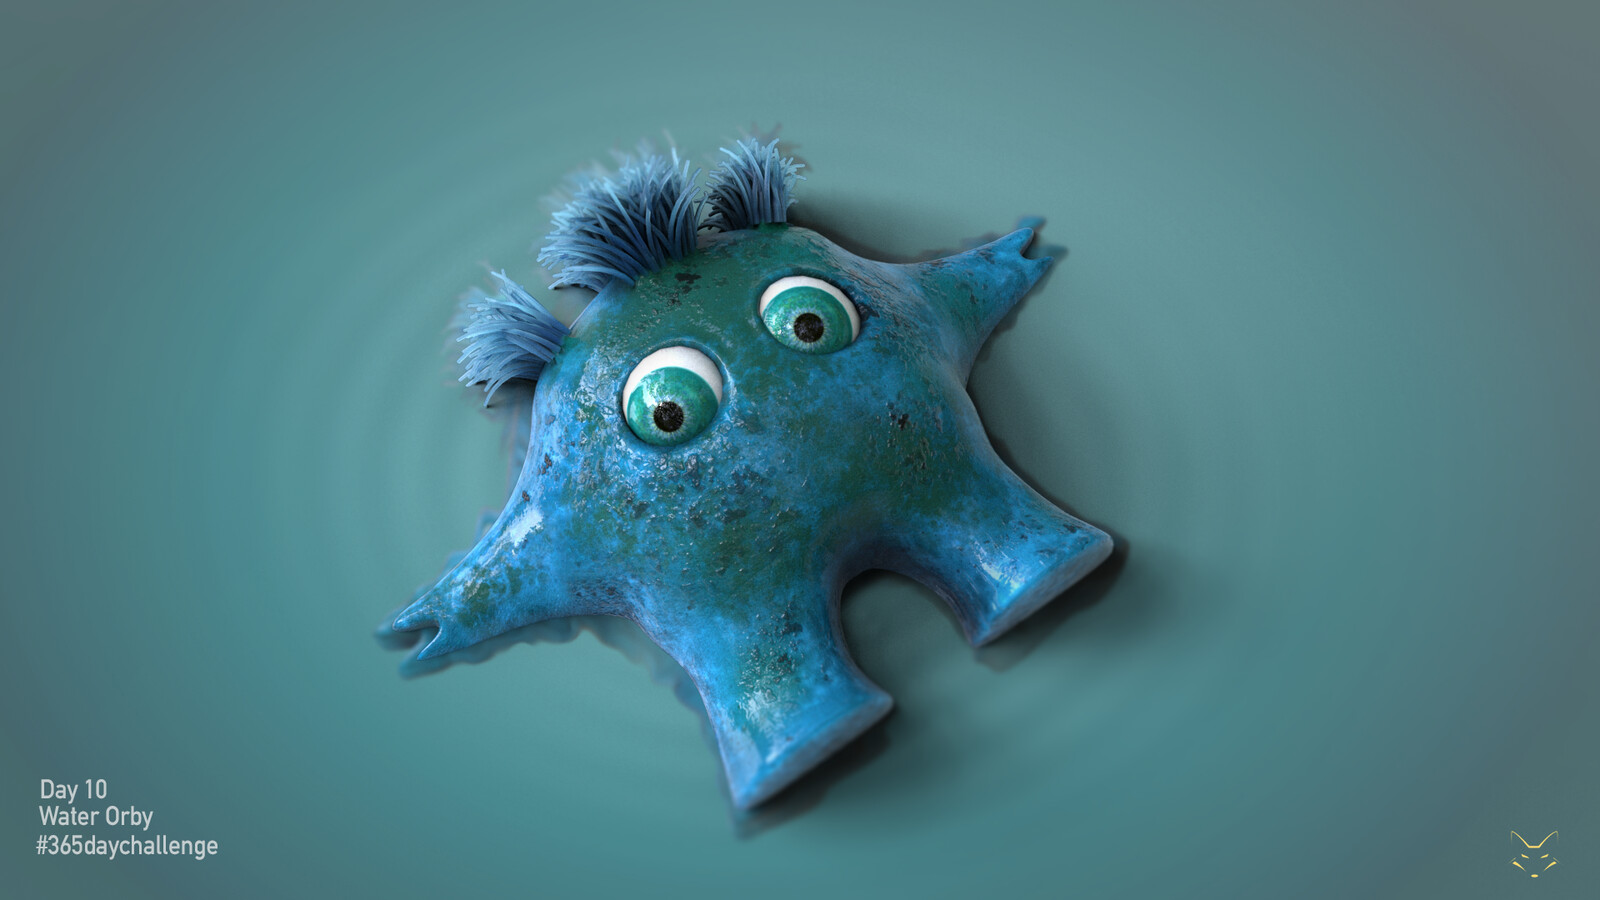 Water Orby